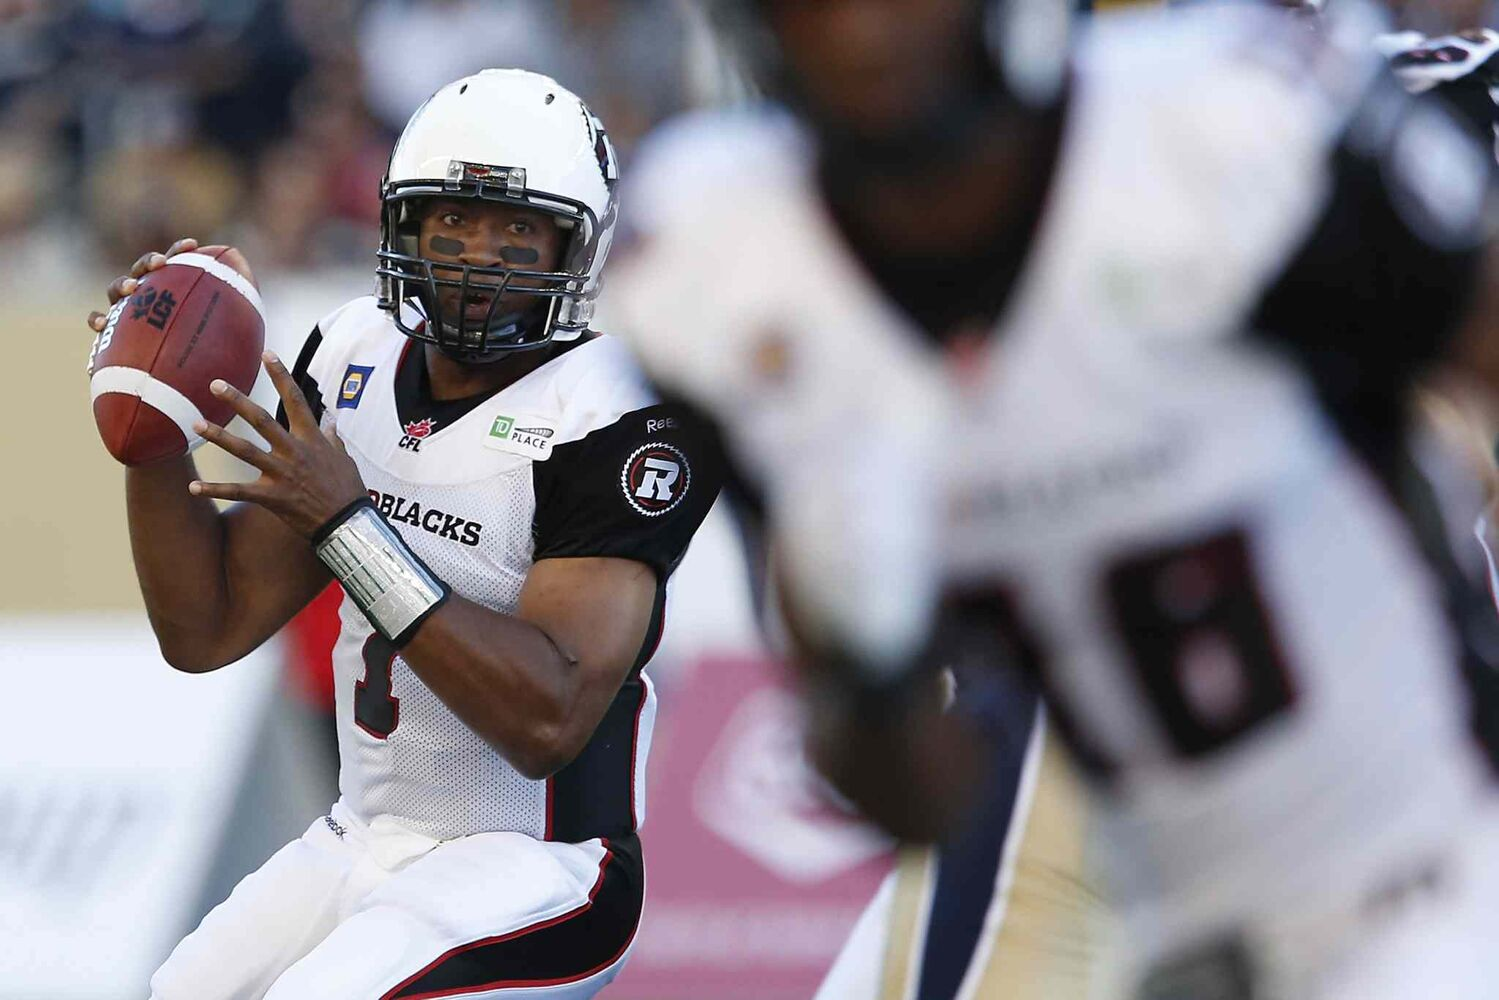 Ottawa Redblacks' quarterback Henry Burris (1) gets set to throw against the Winnipeg Blue Bombers during the first half of Thursday's game at Investors Group Field. (John Woods / The Canadian Press)